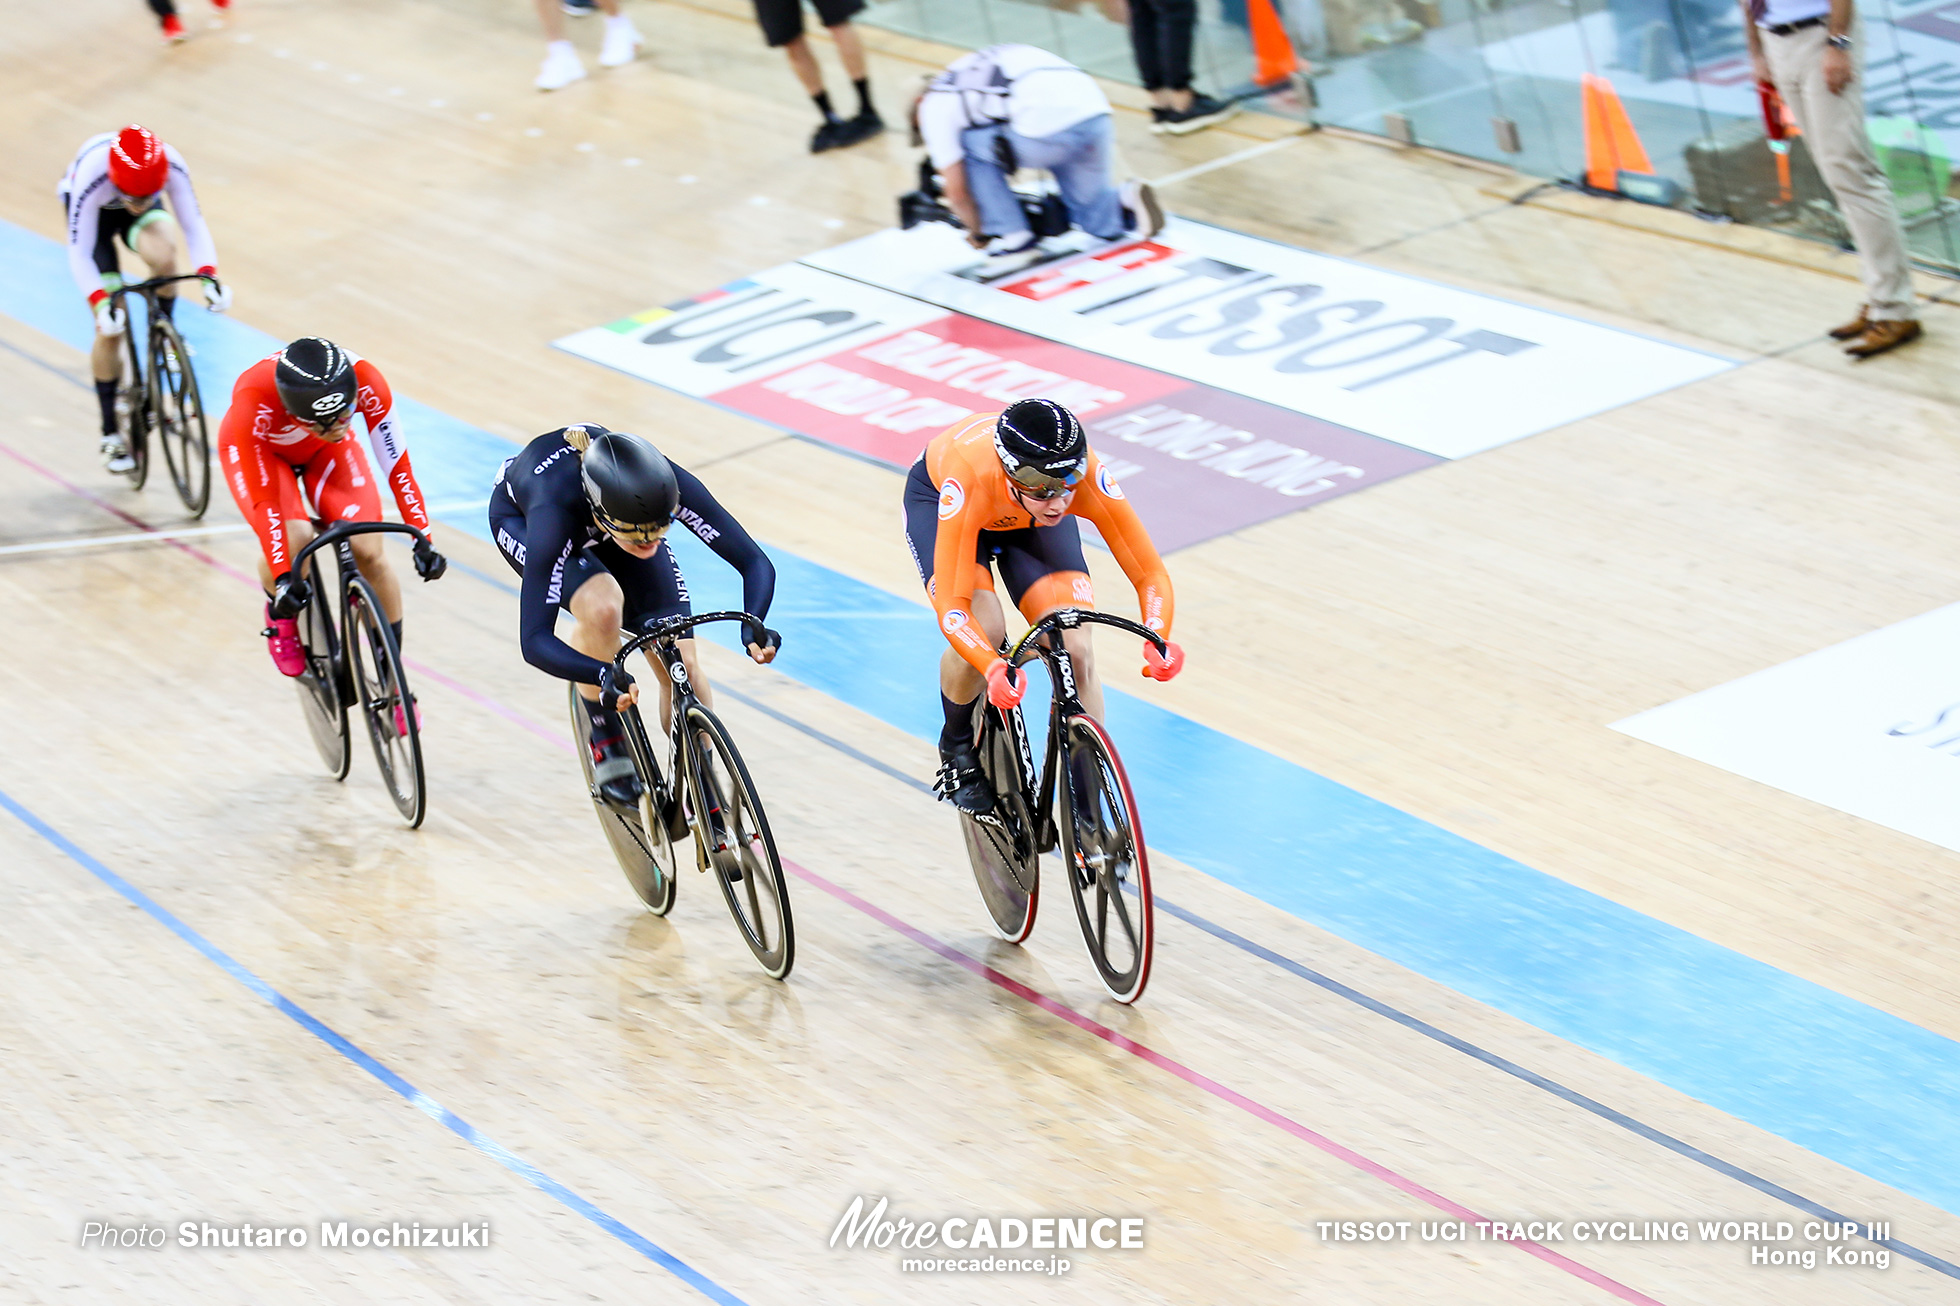 1st Round / Women's Keirin / TISSOT UCI TRACK CYCLING WORLD CUP III, Hong Kong